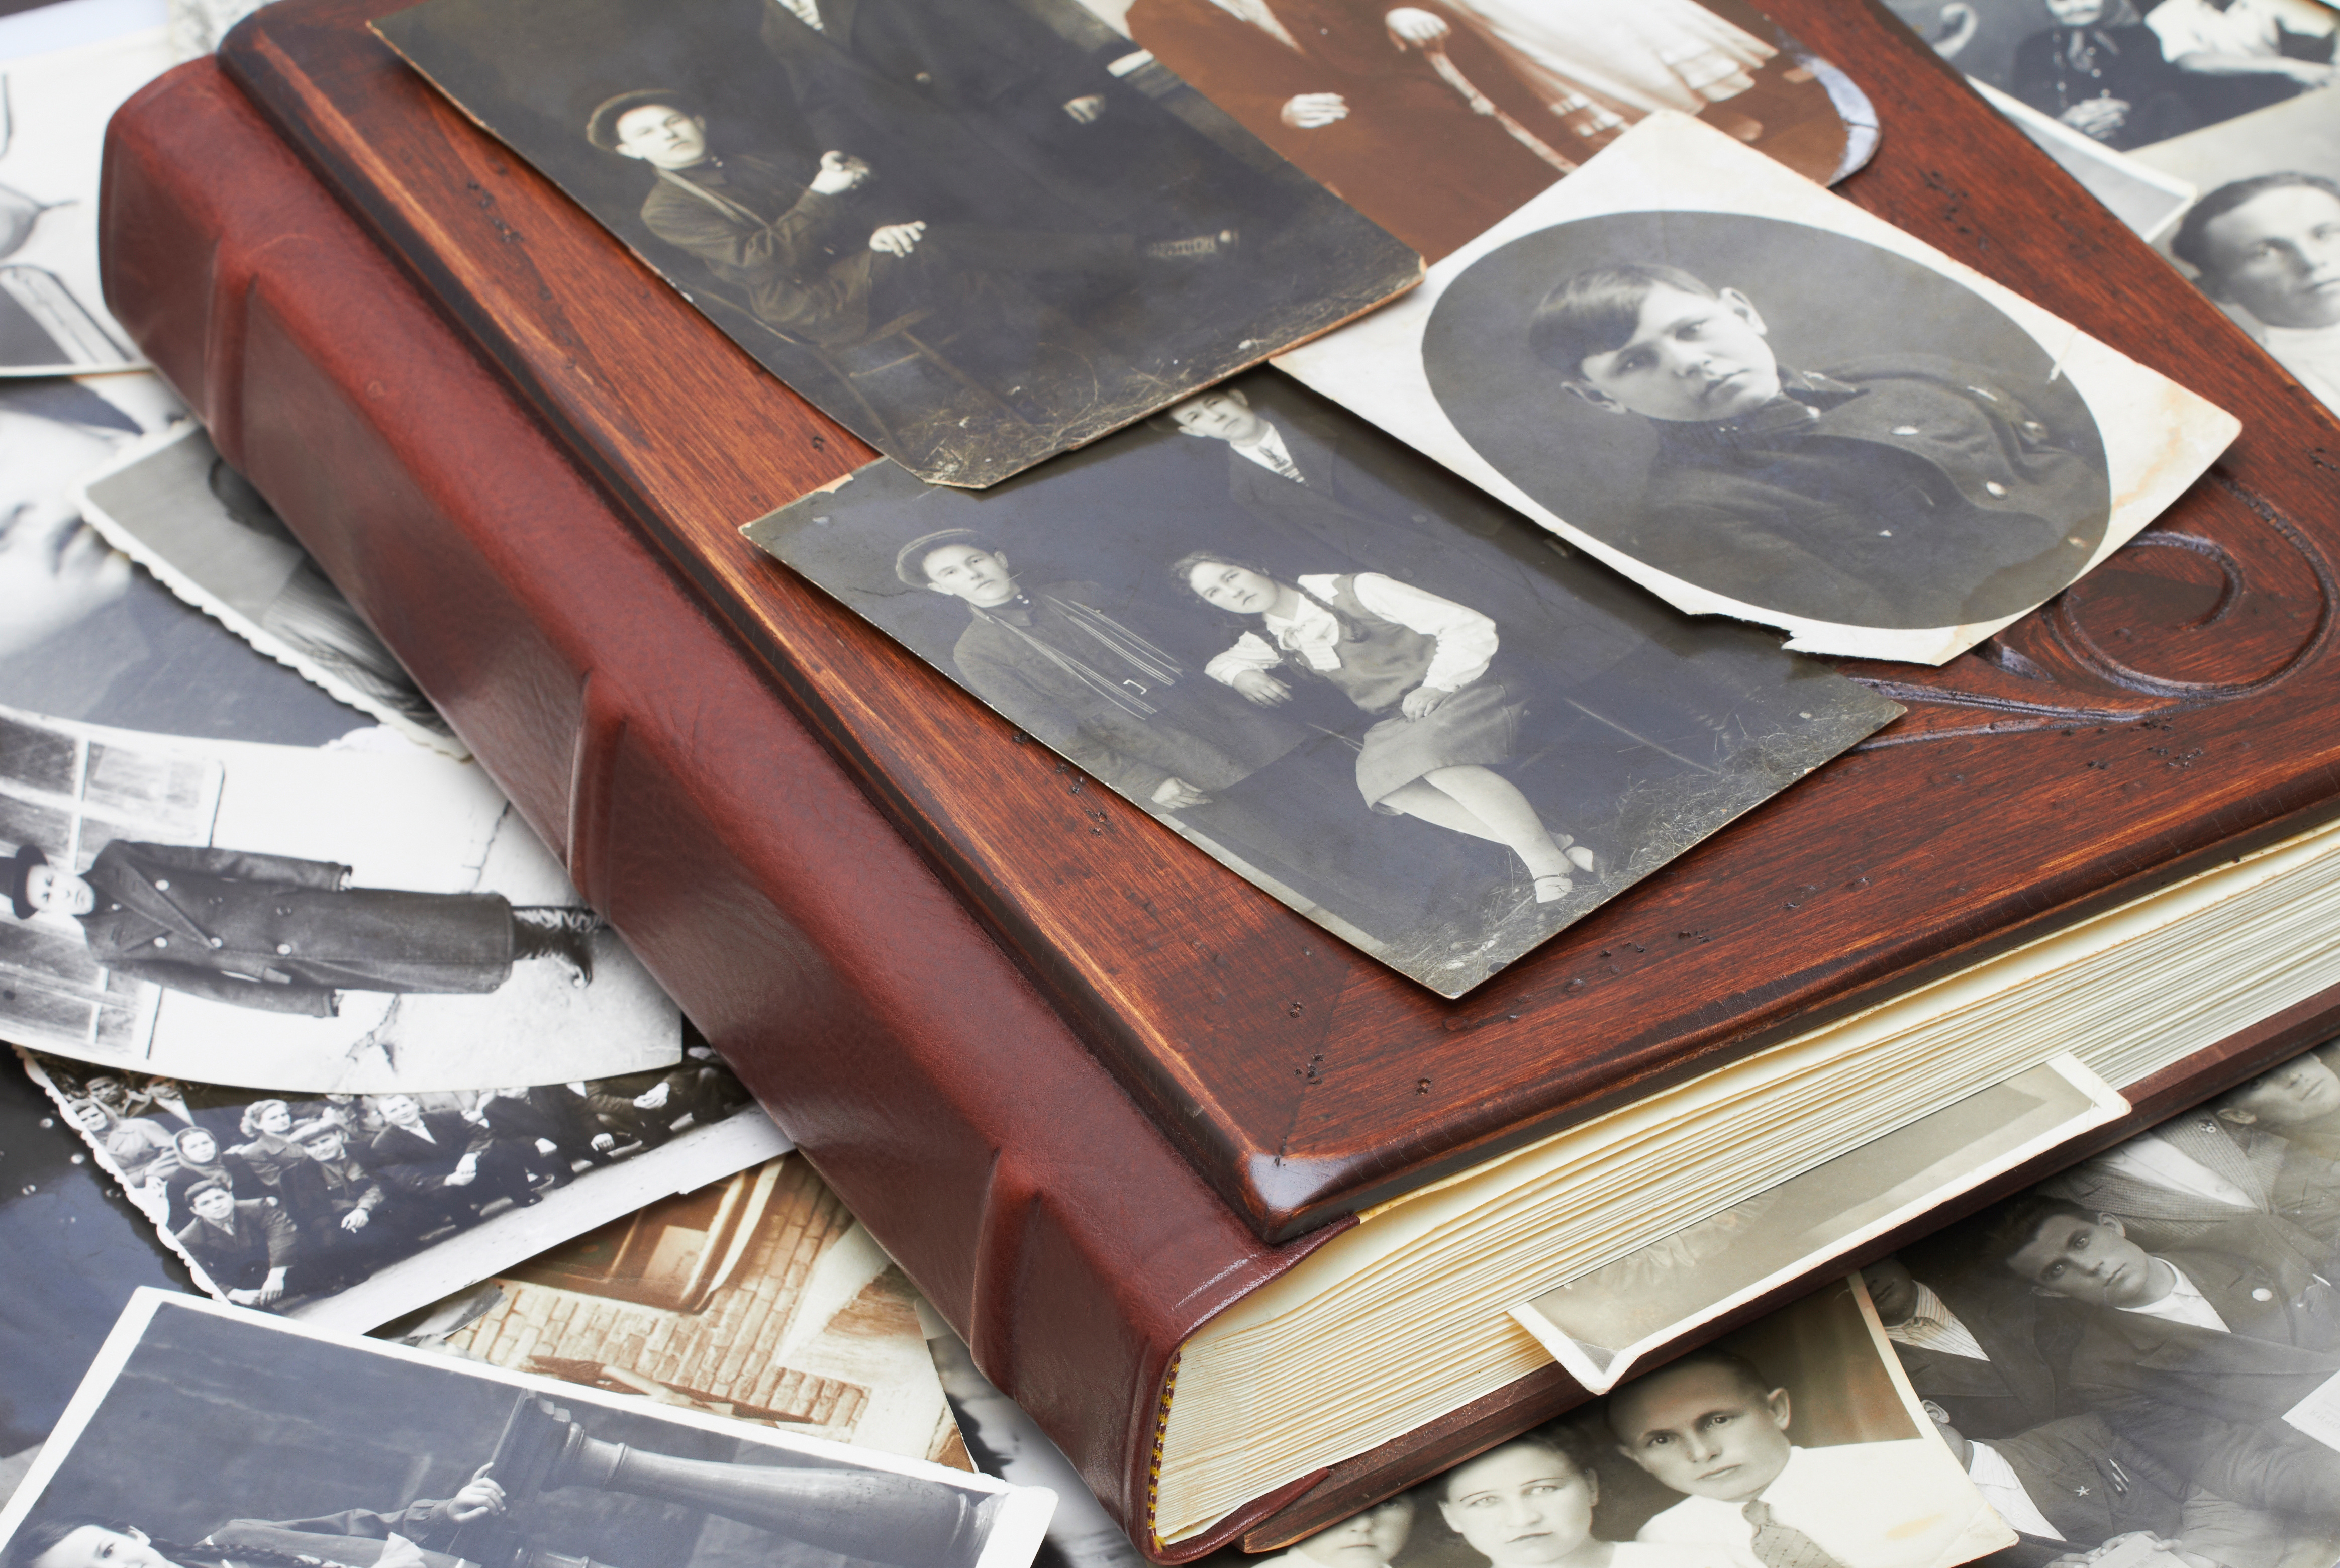 Genealogy - Book and Photos